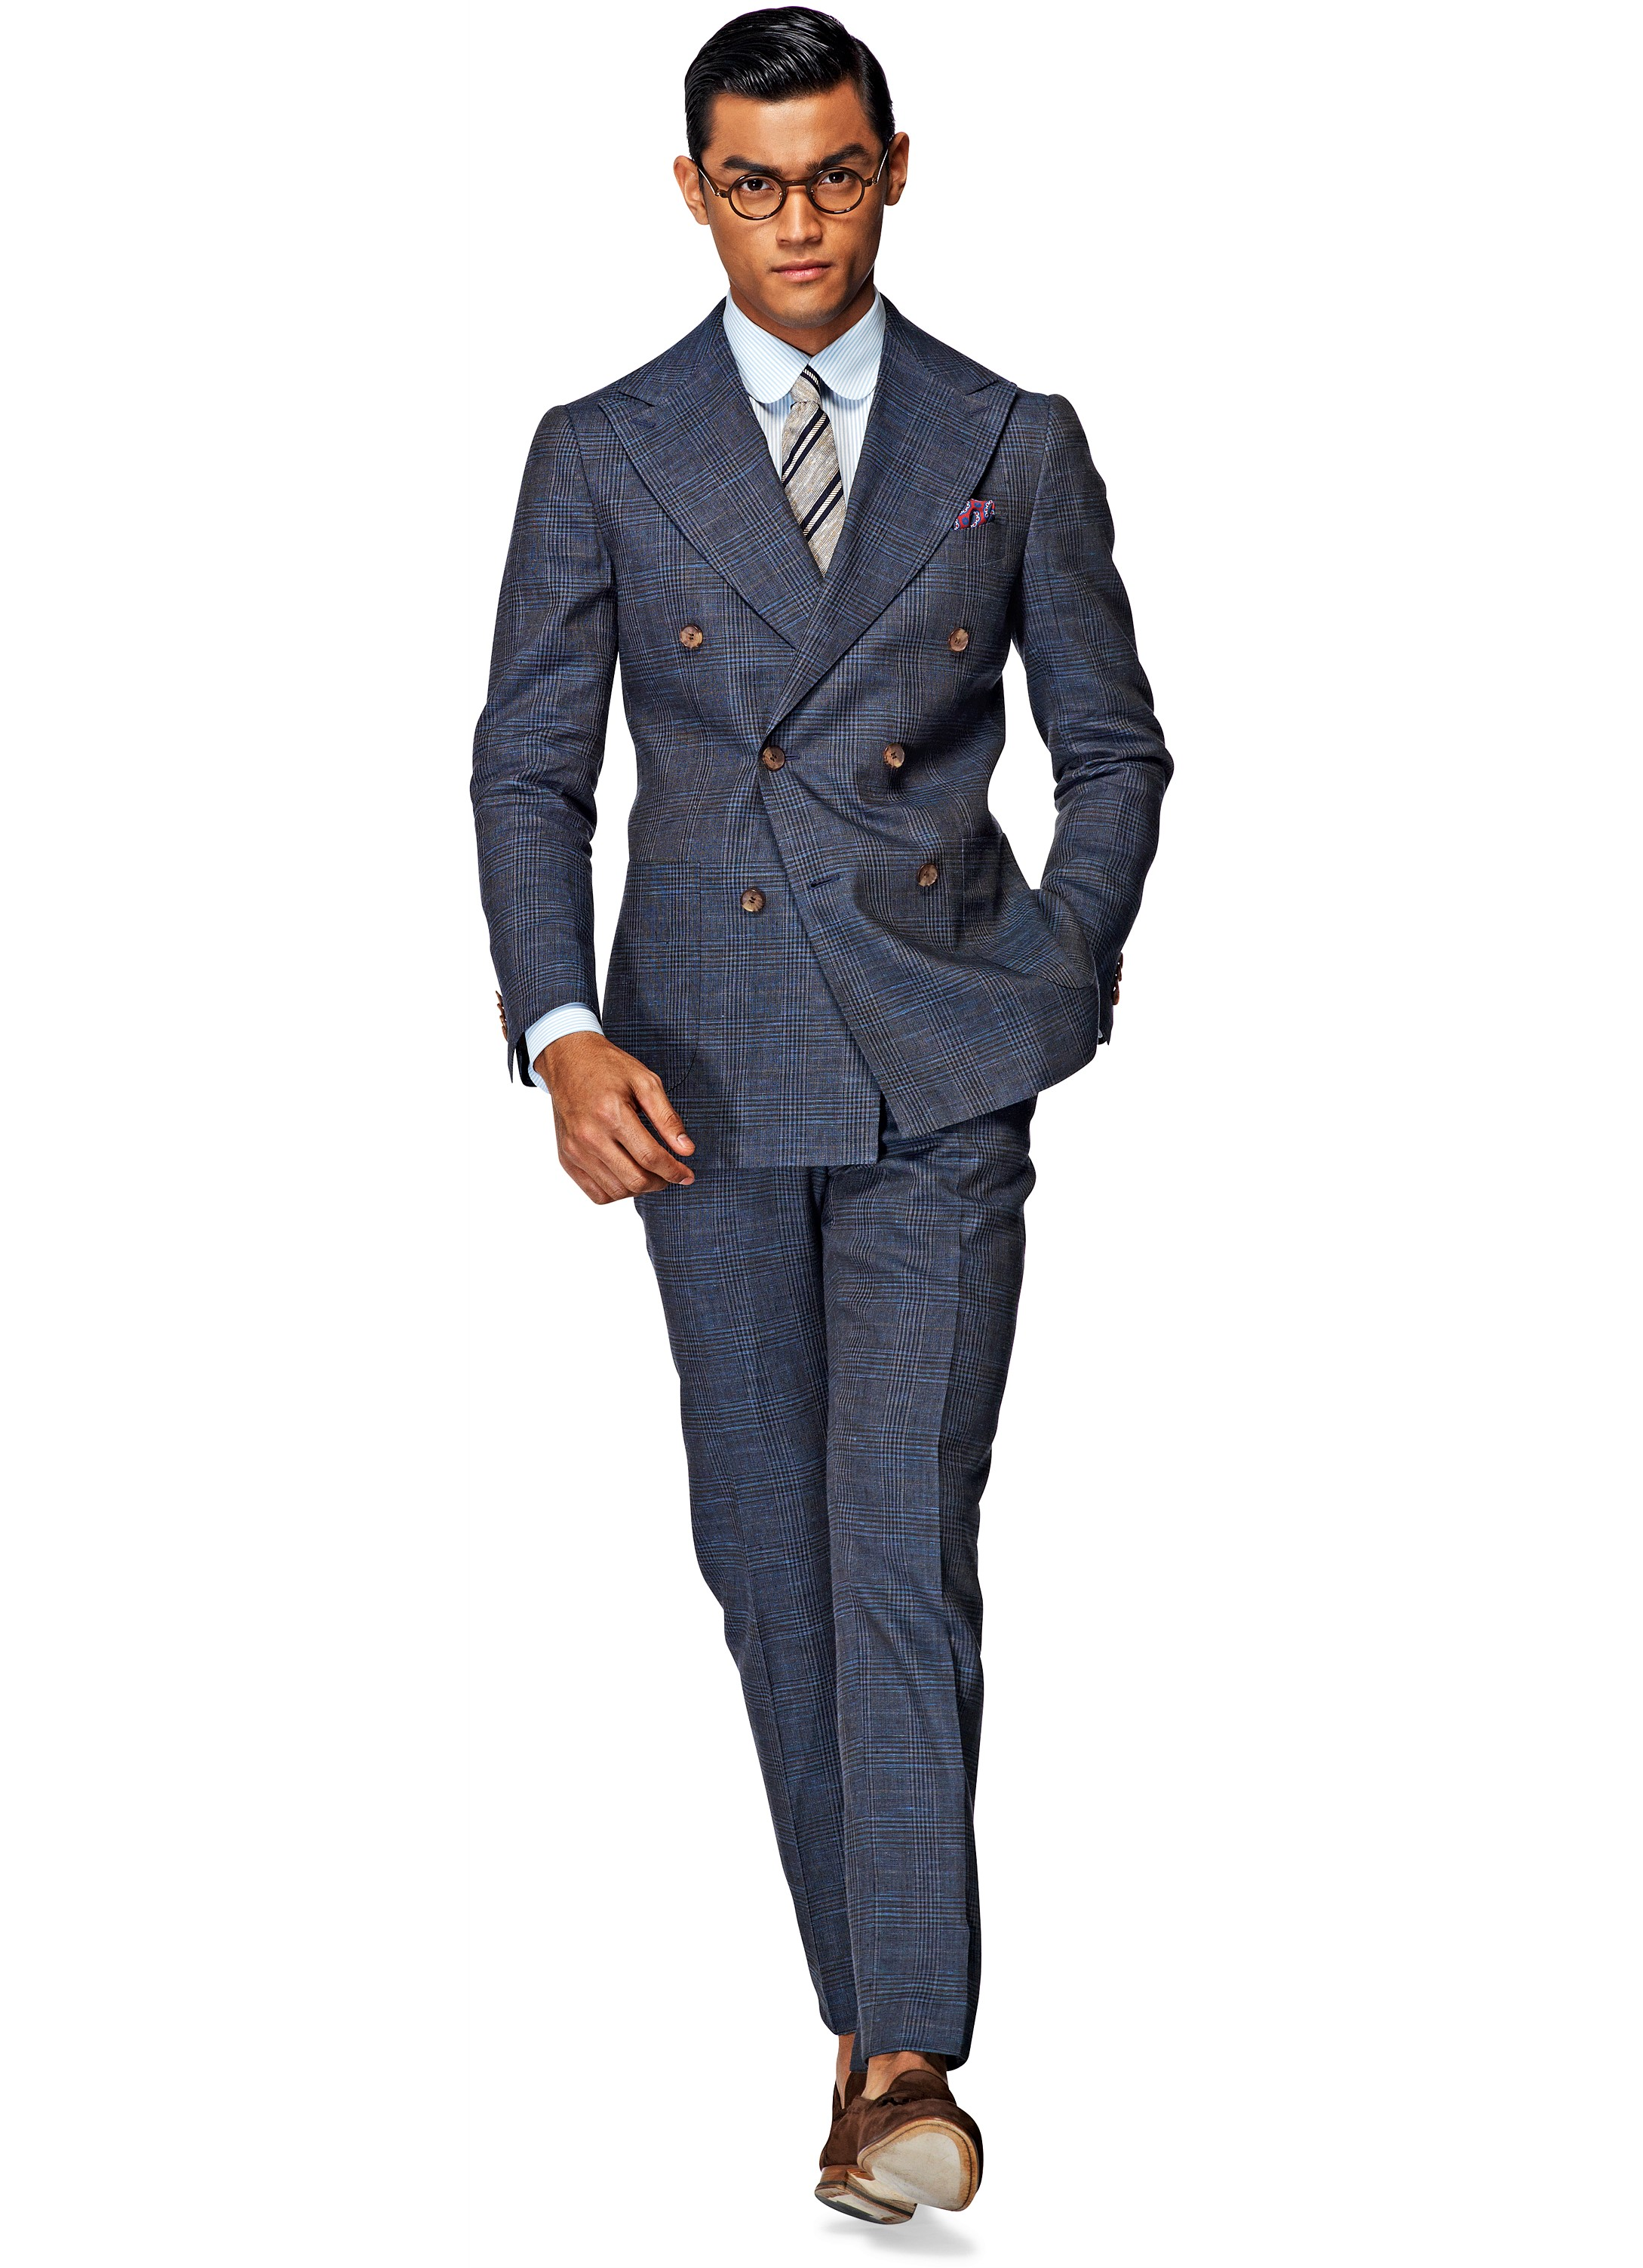 *Yet another wedding suit thread*